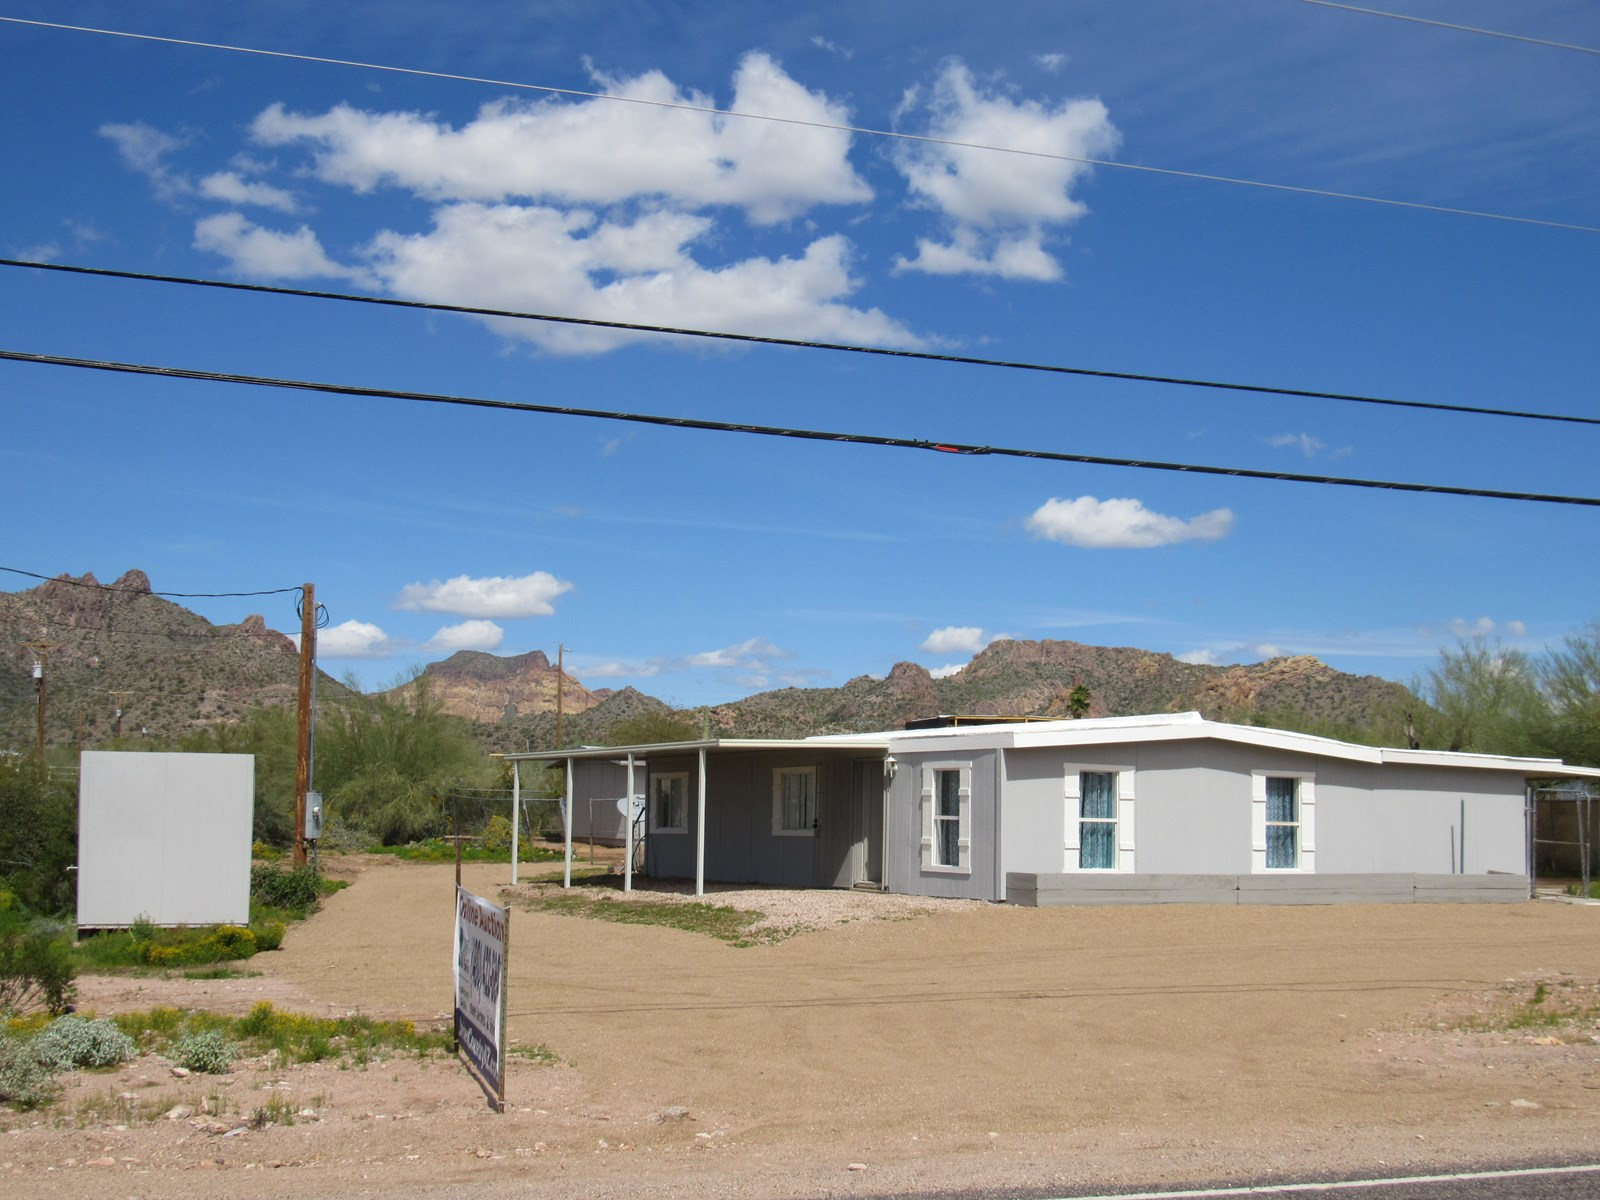 3 BEDROOM APACHE JUNCTION HORSE PROPERTY FOR SALE